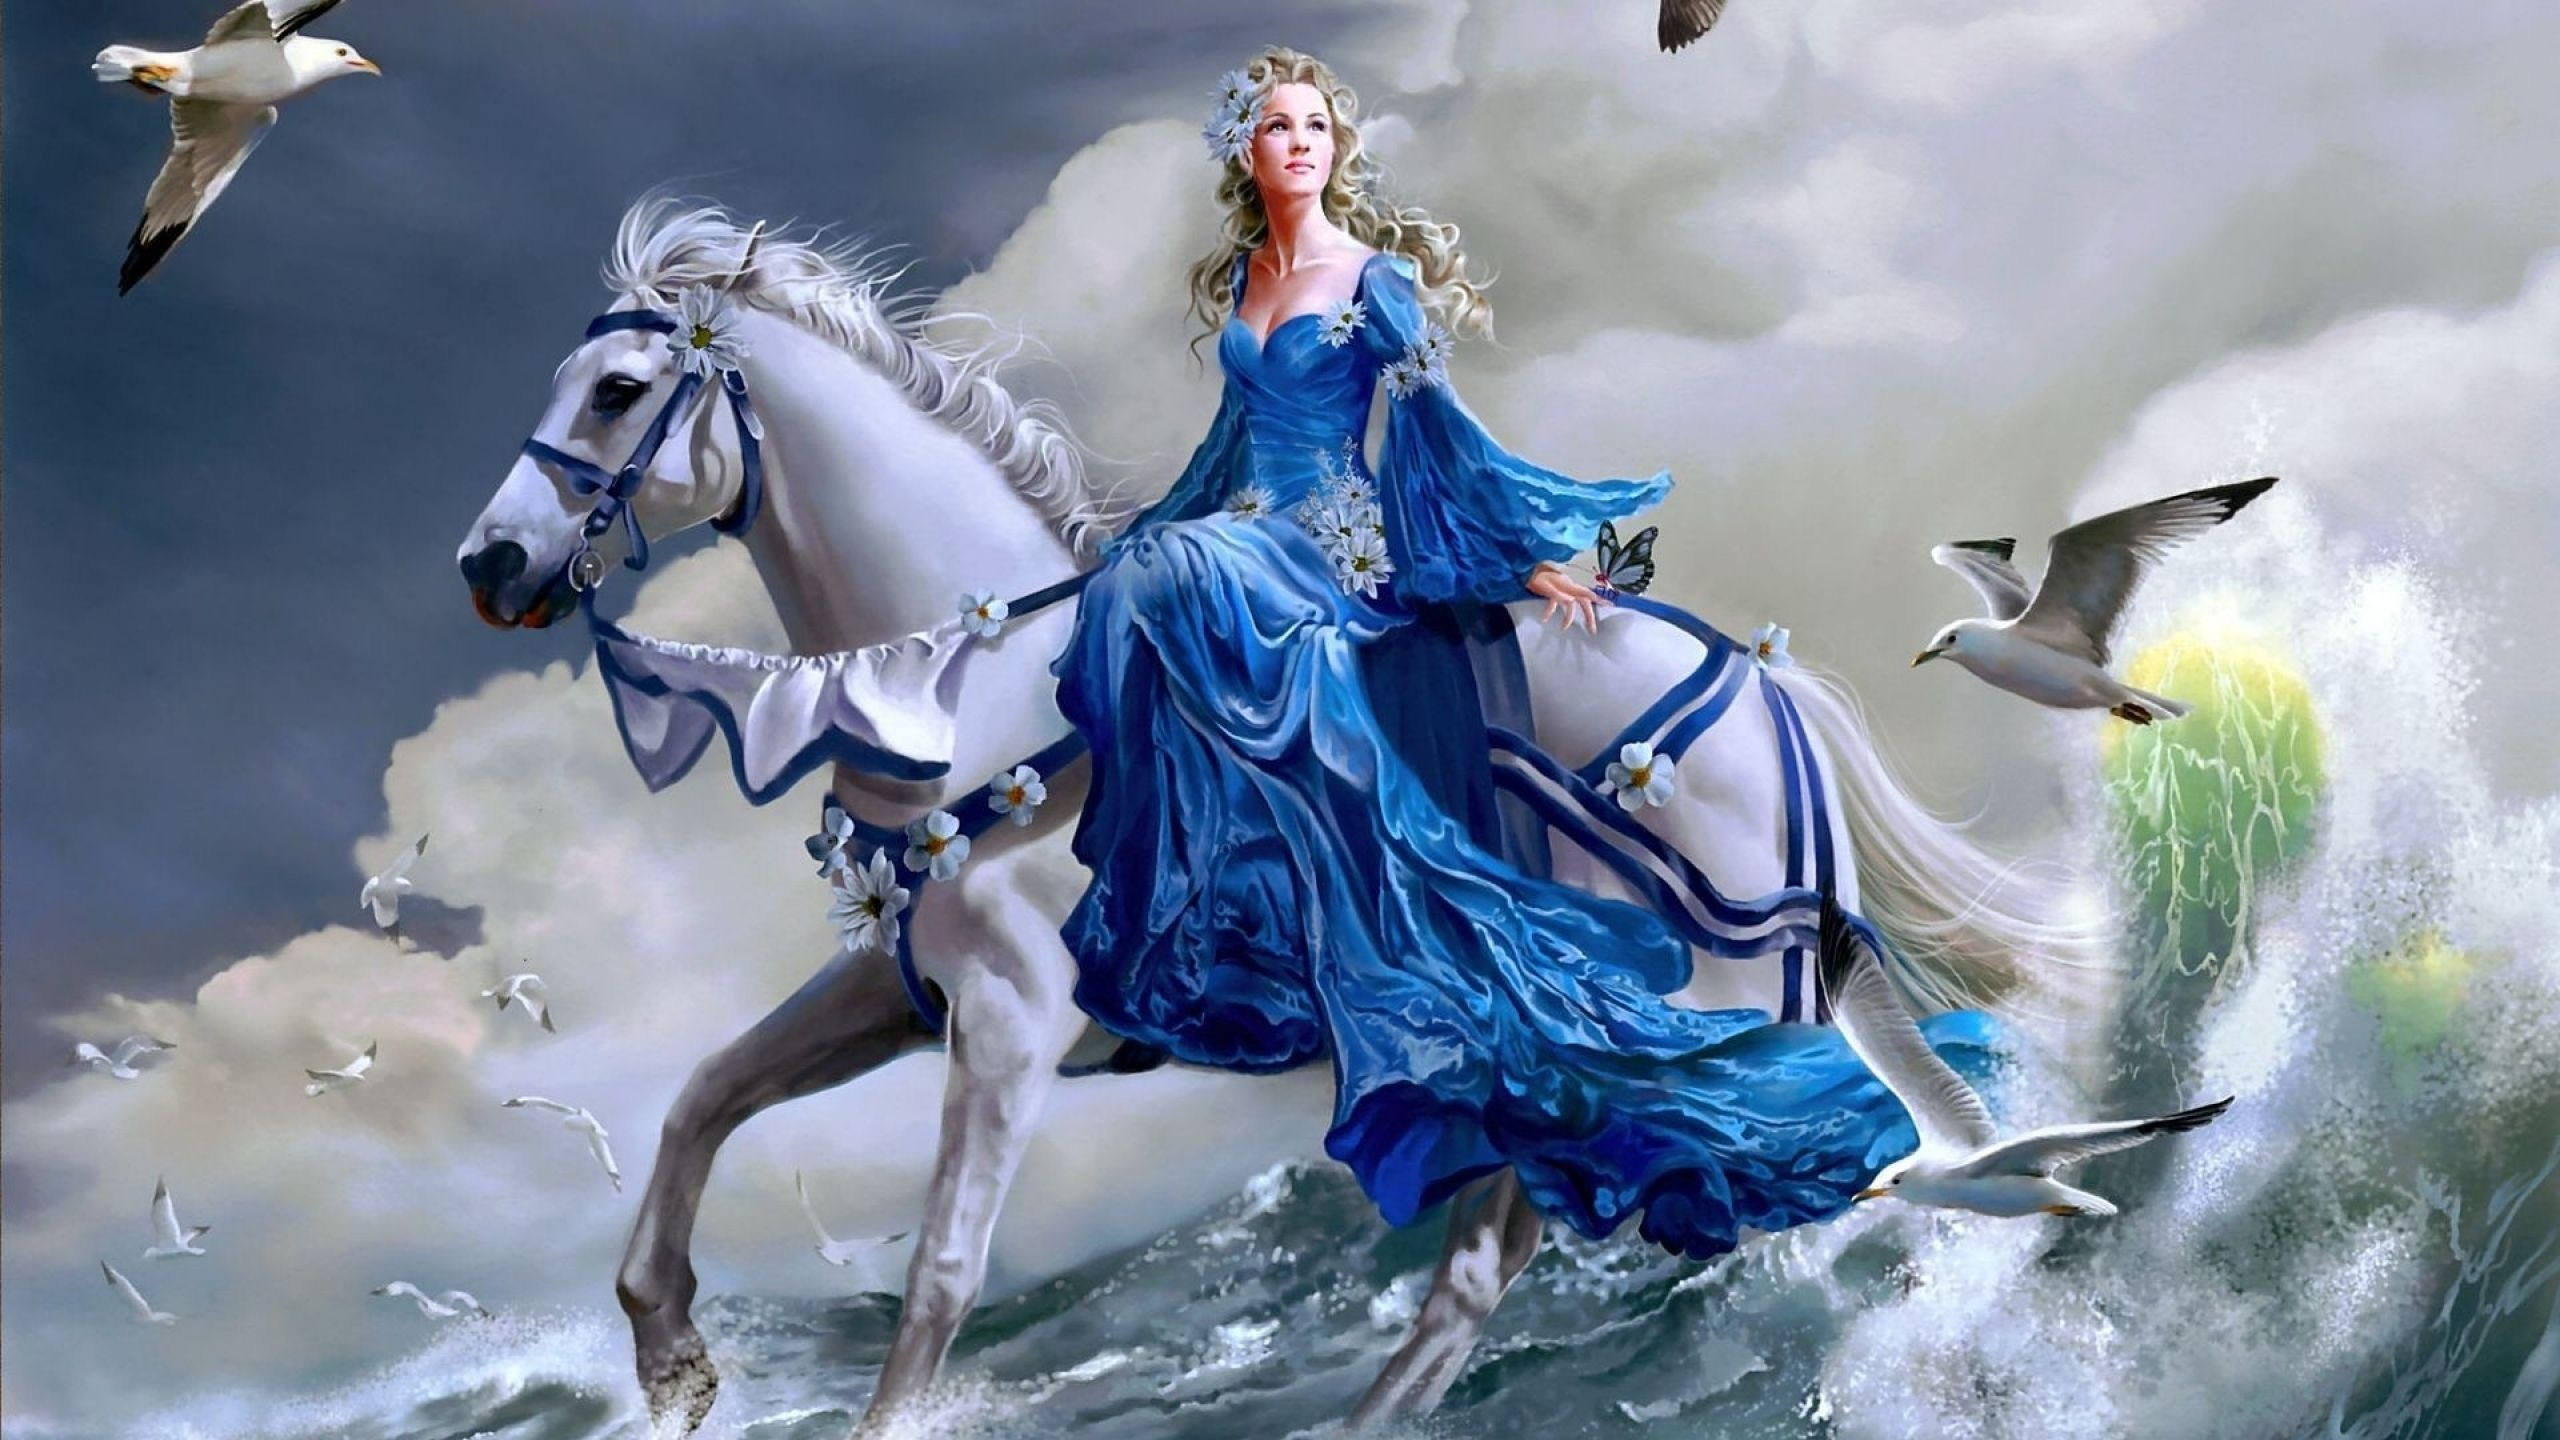 Girl Riding A Horse On Water Fantasy Wallpaper 28685 .